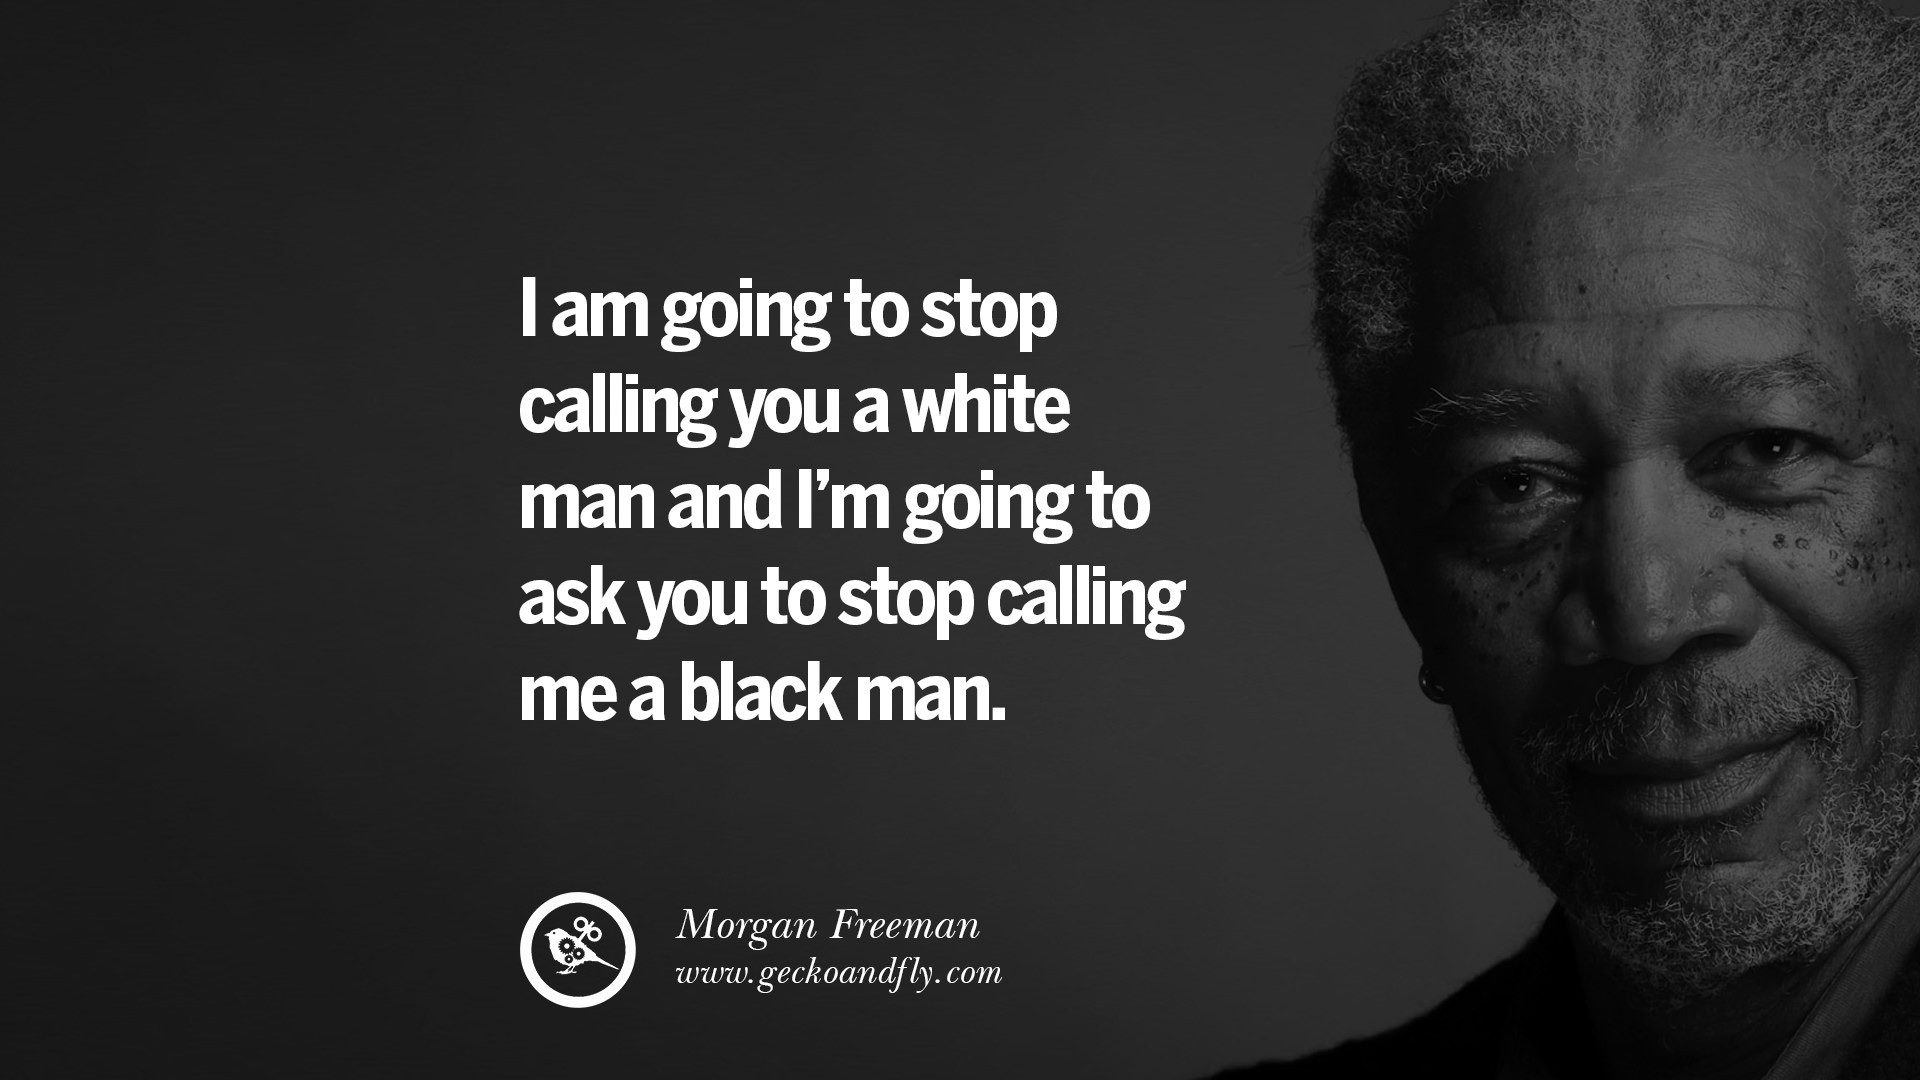 Life And Death Quotes 10 Morgan Freeman Quotes On Life Death Success And Struggle